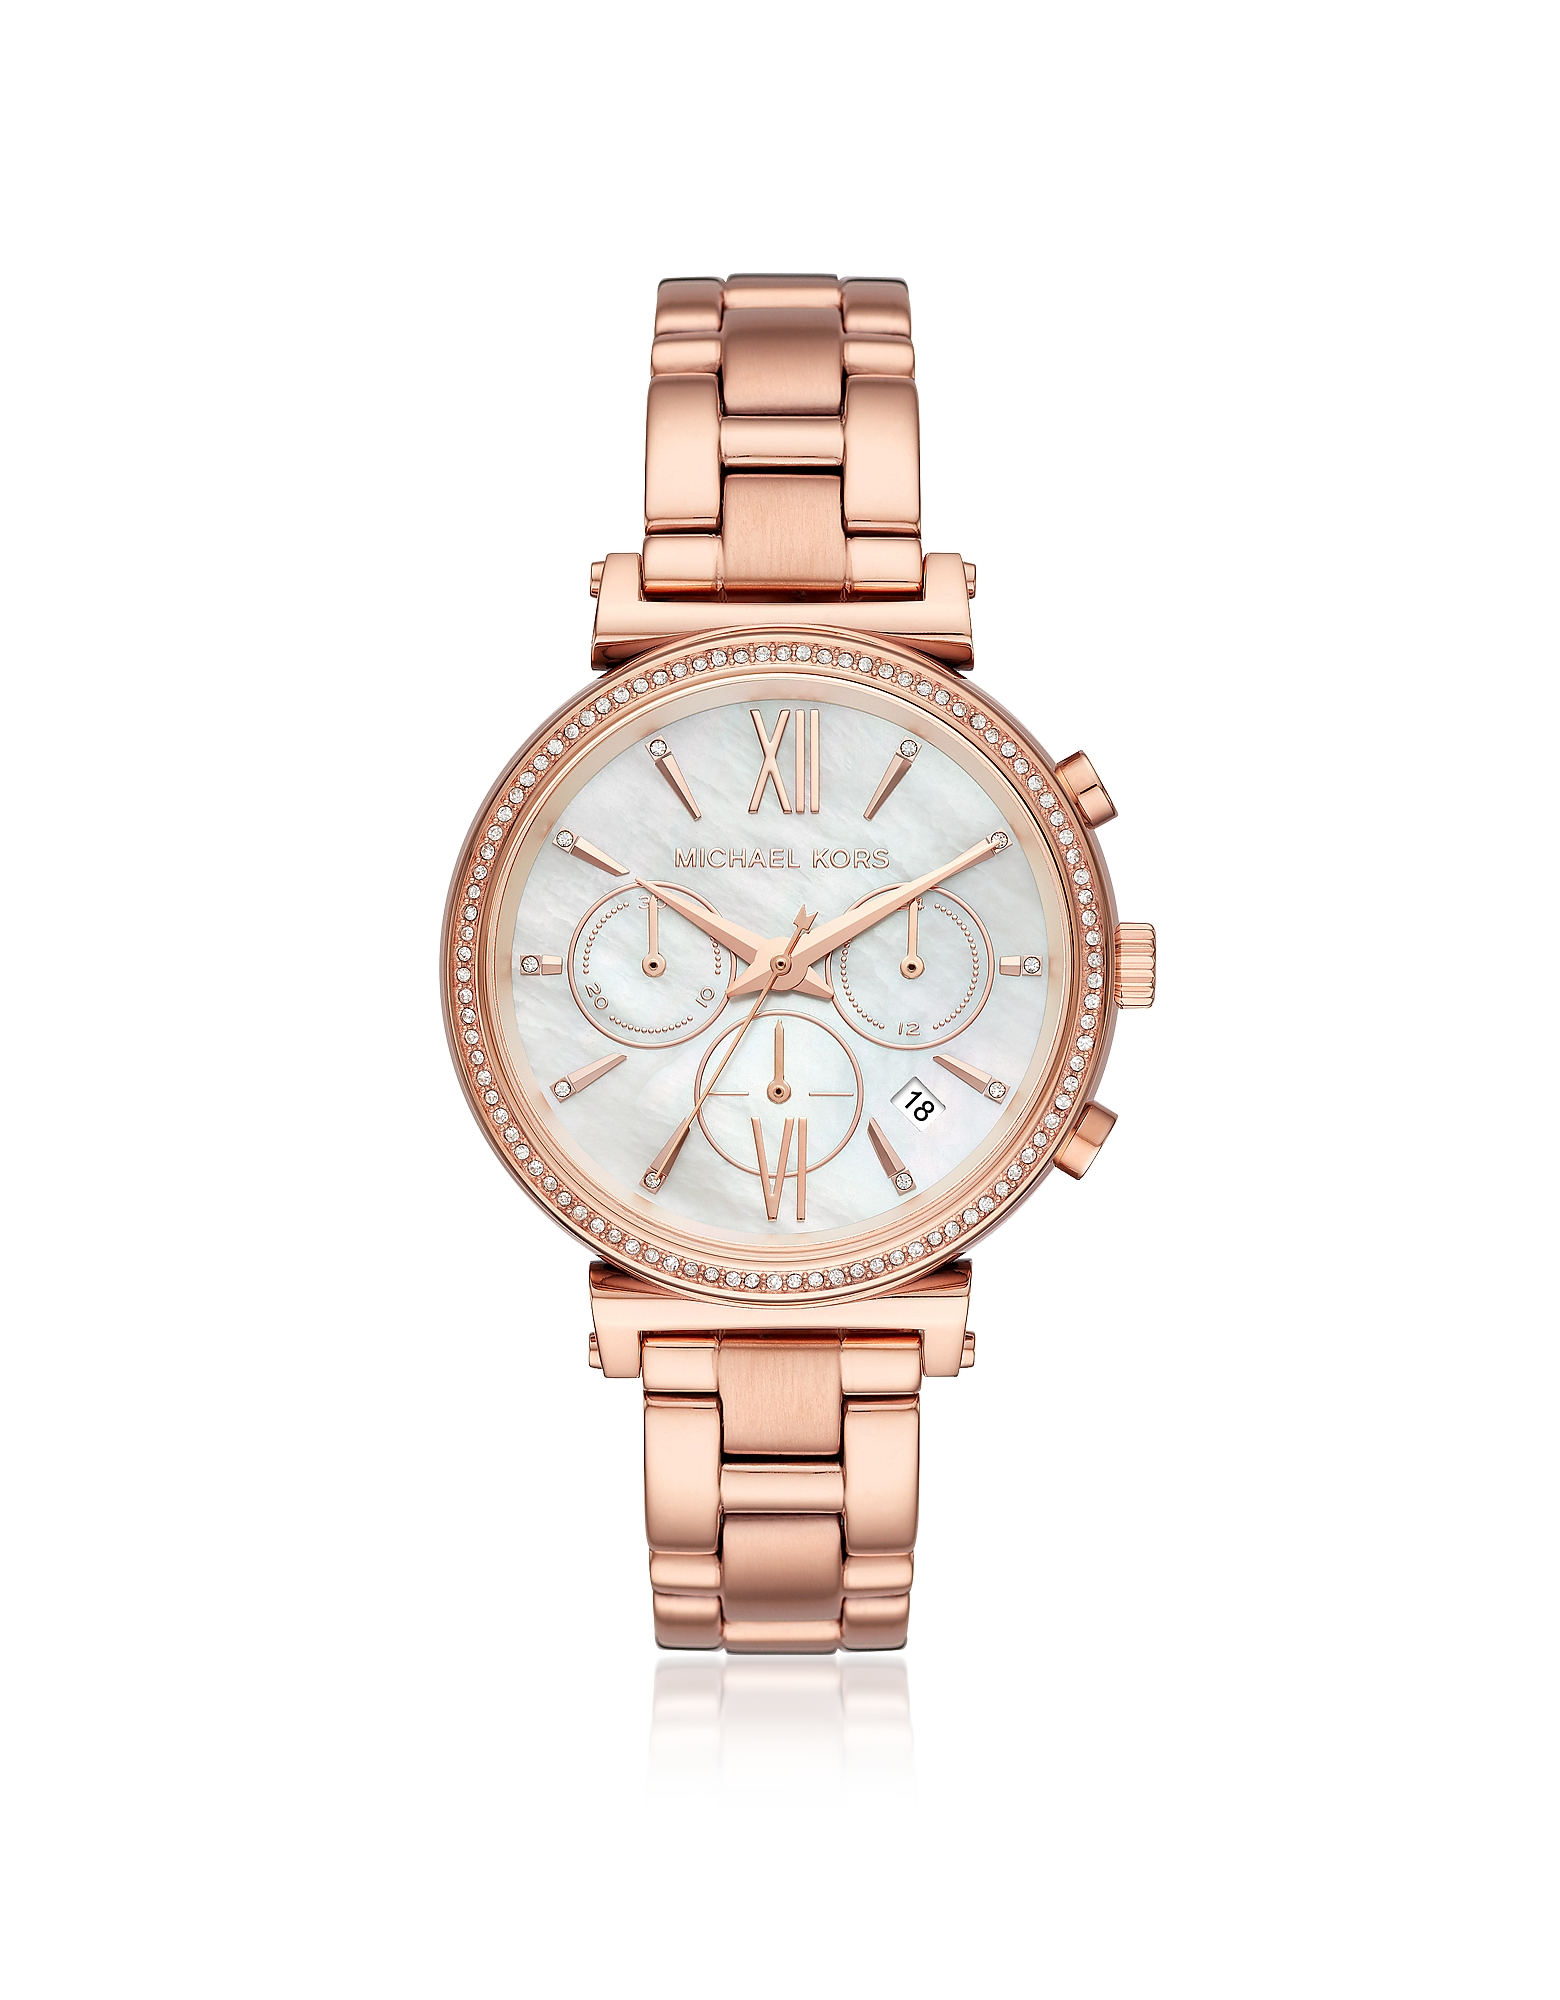 Michael Kors Women's Watches, Sofie Pavé Rose Gold Tone Women's Watch